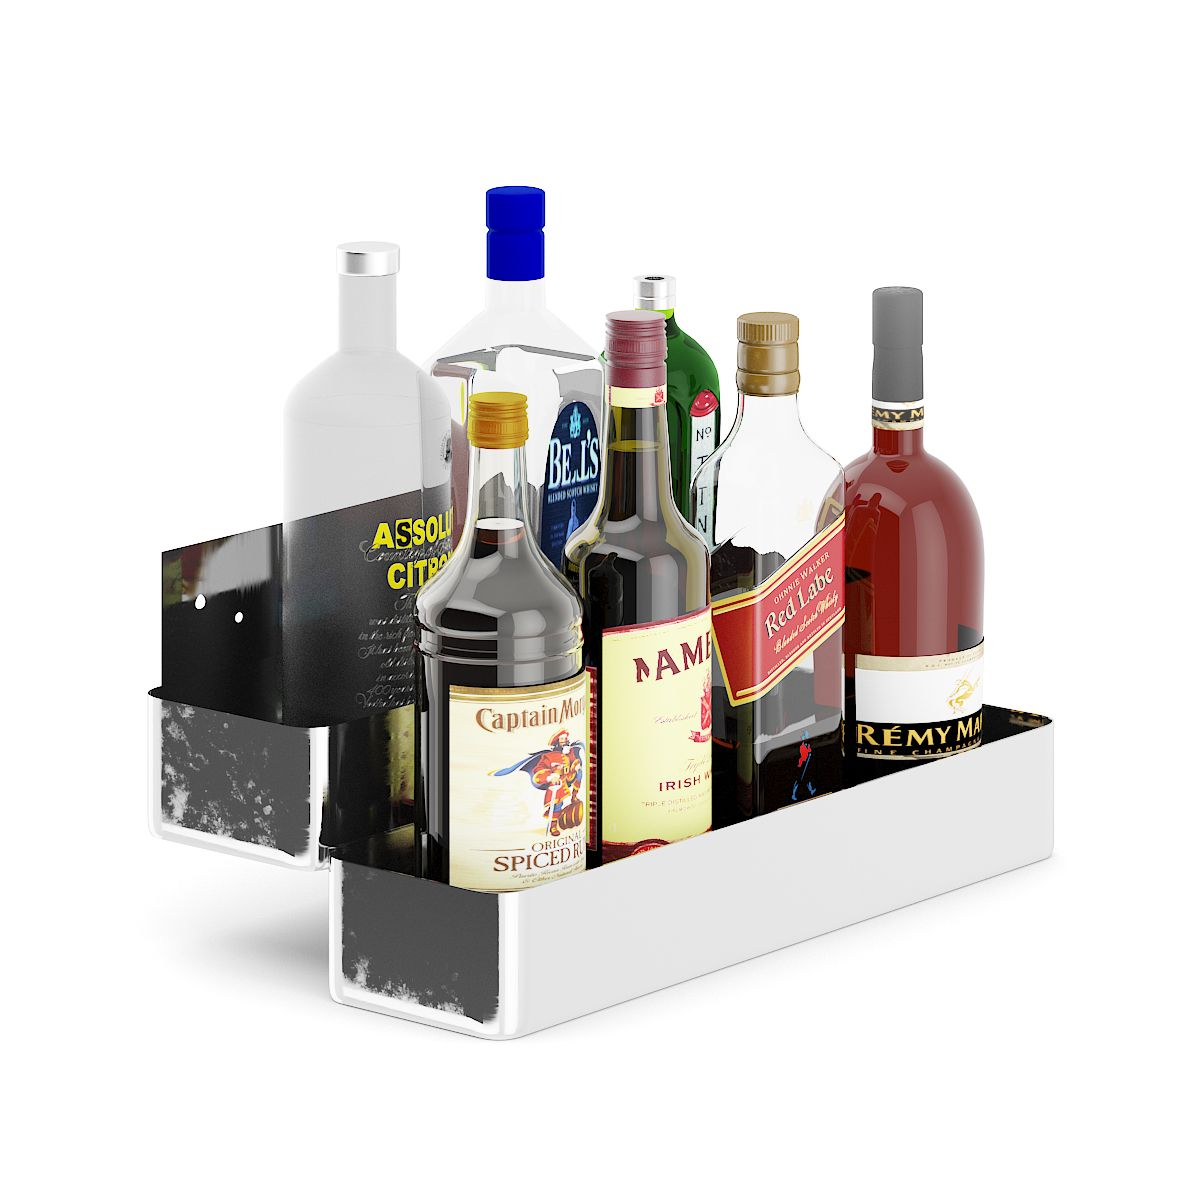 Metal Shelf with Bottles #Metal, #Shelf, #Bottles | Product